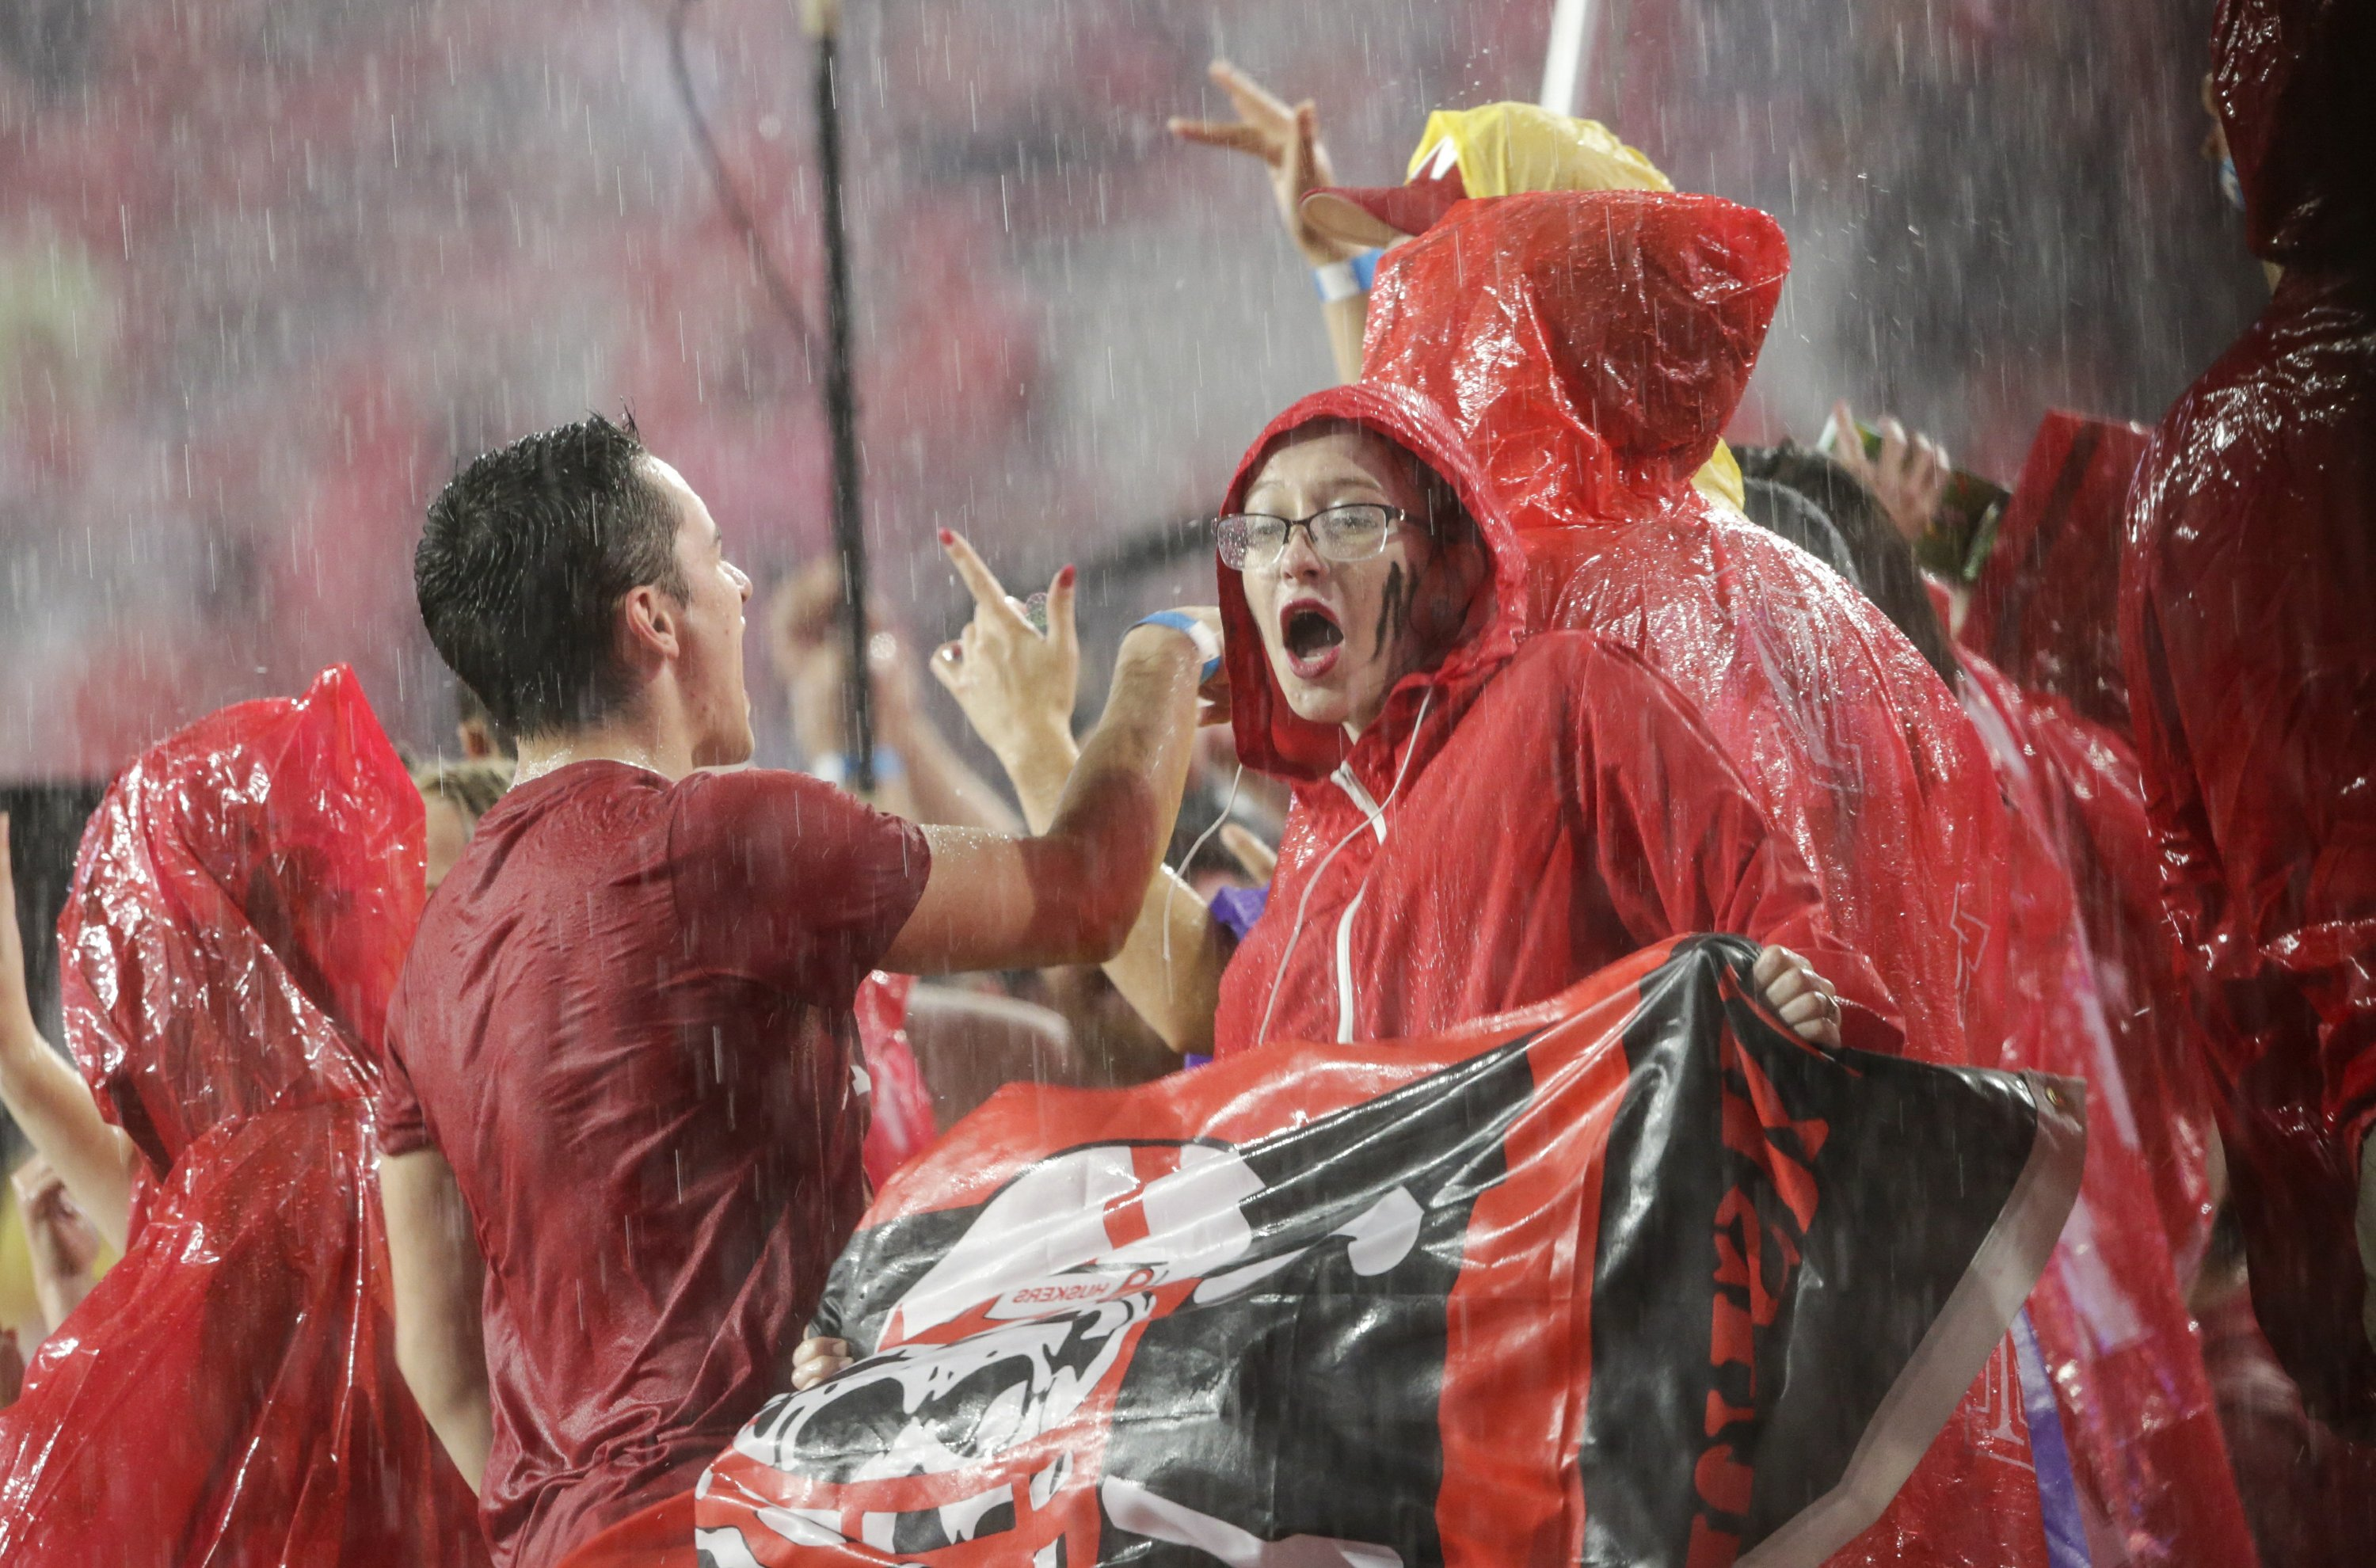 Weather woes hit college football, stadiums cleared